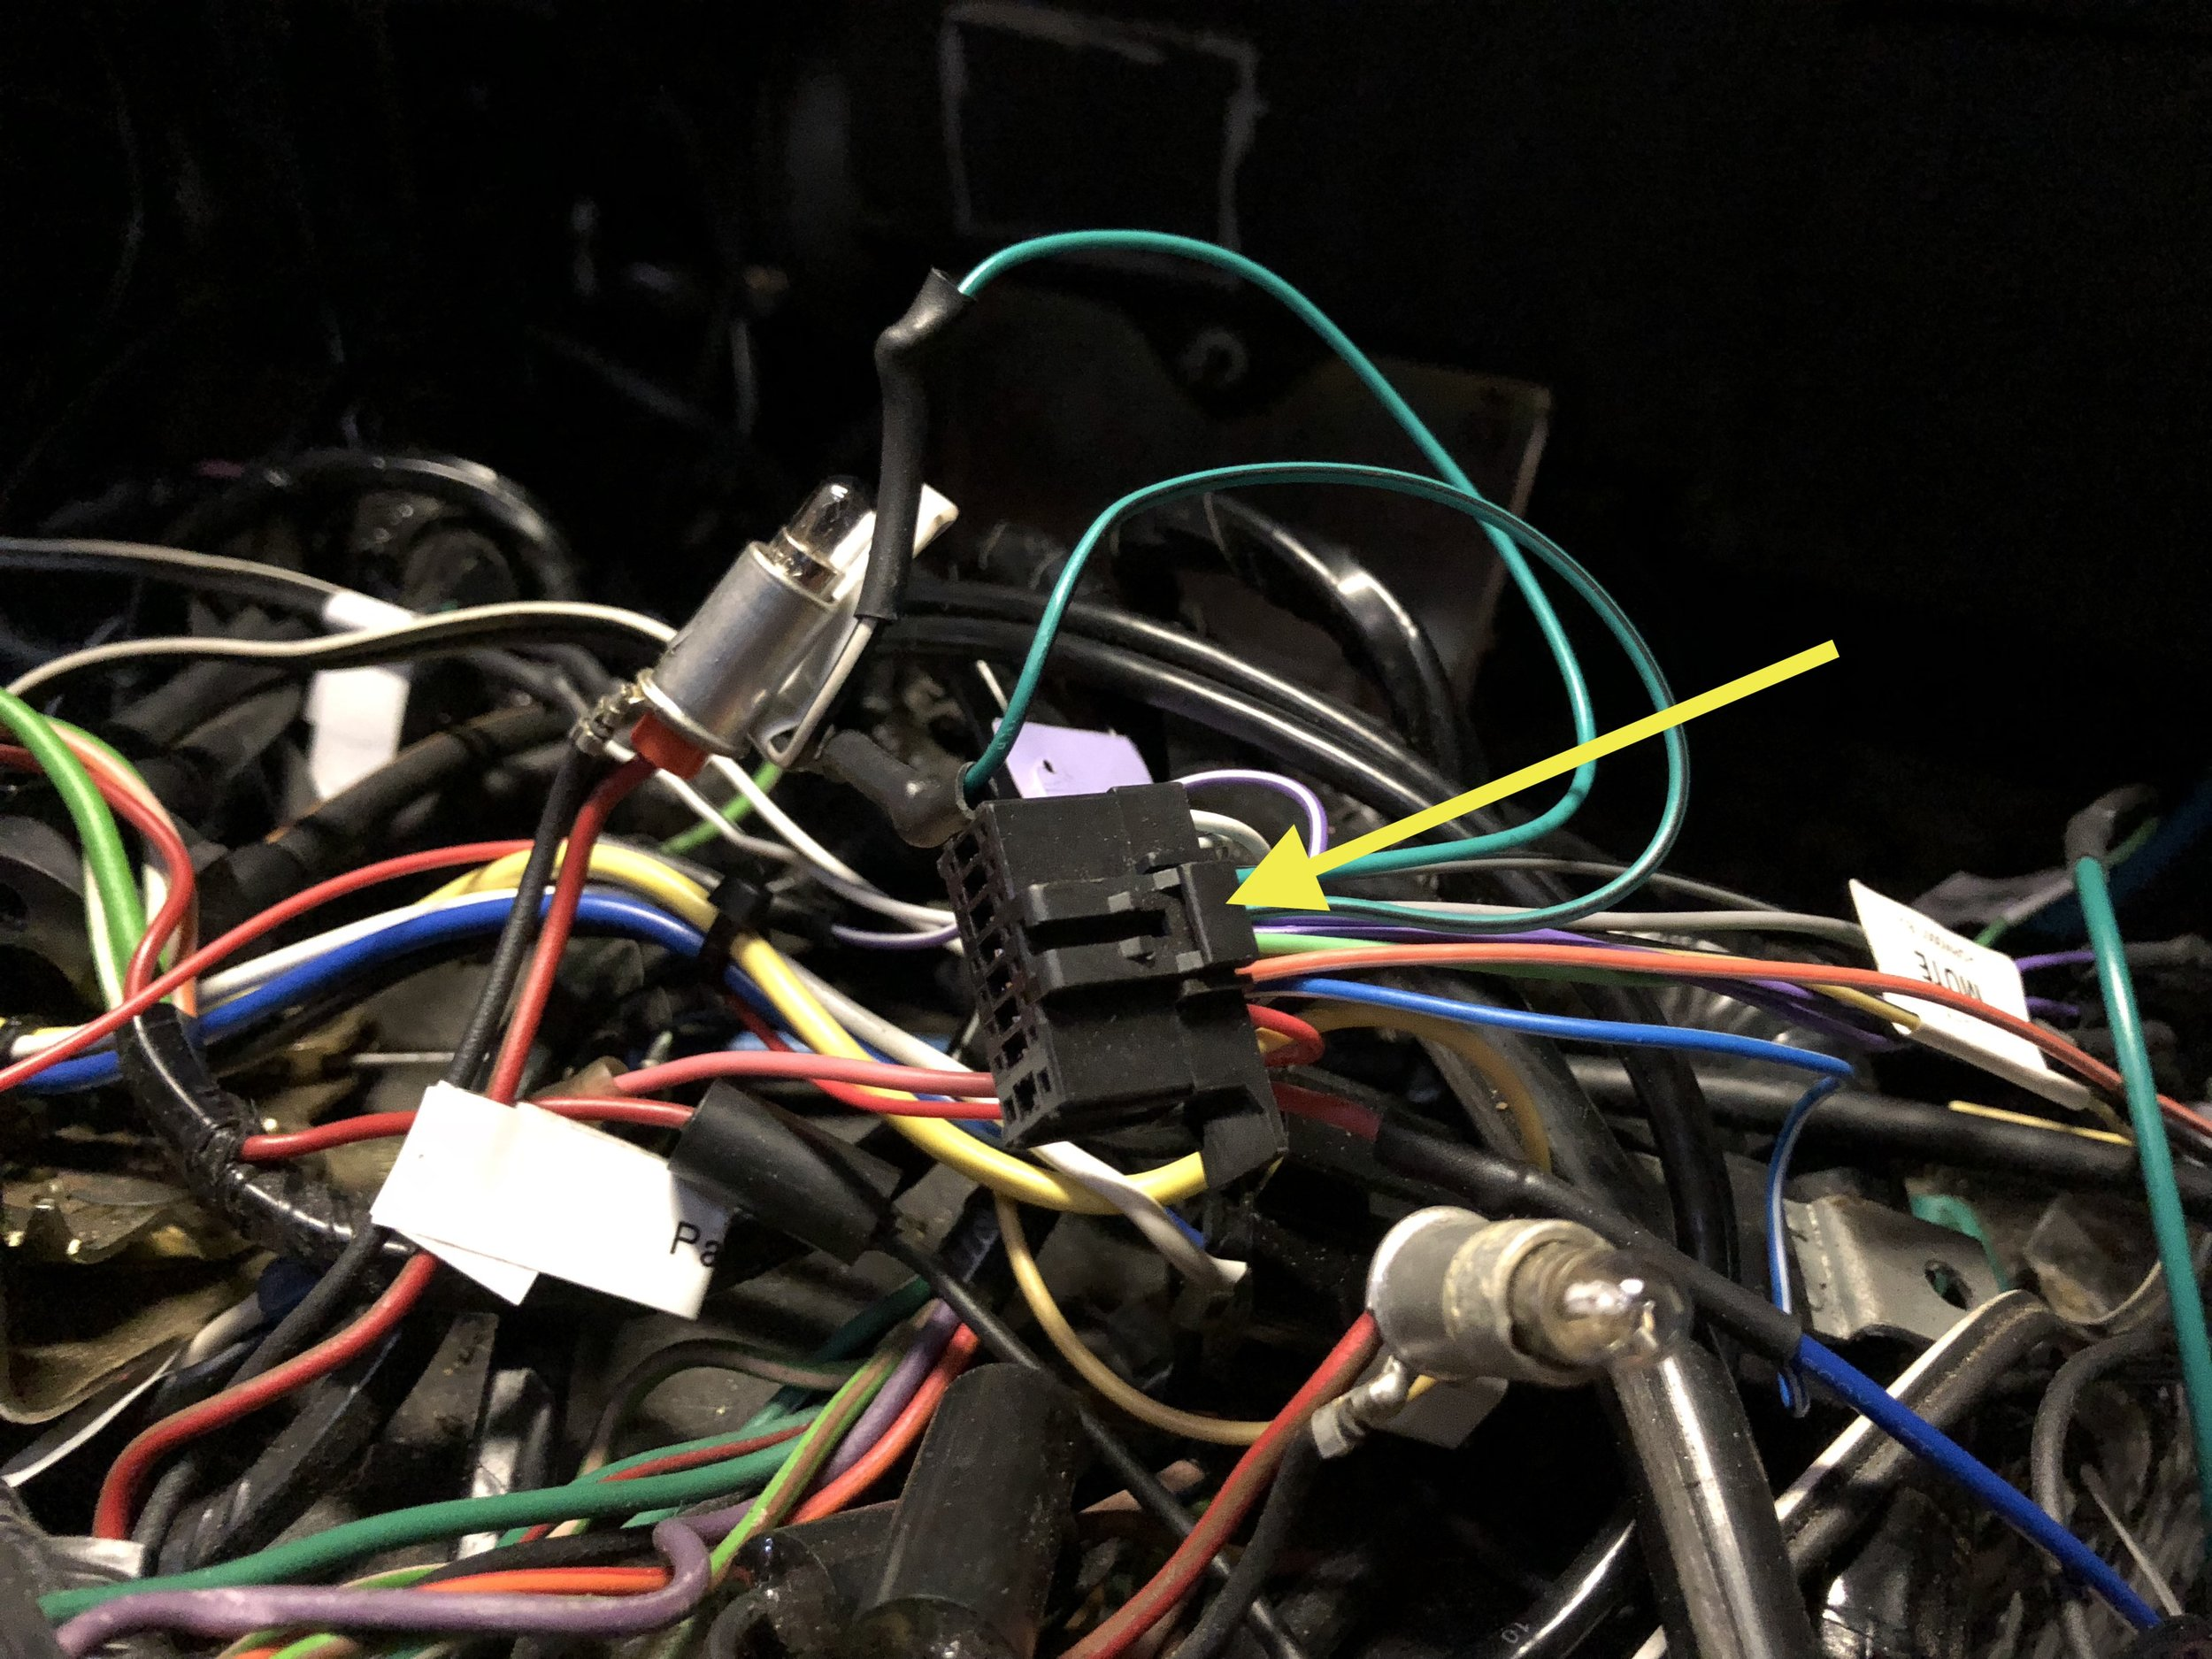 The harness, all wired up.